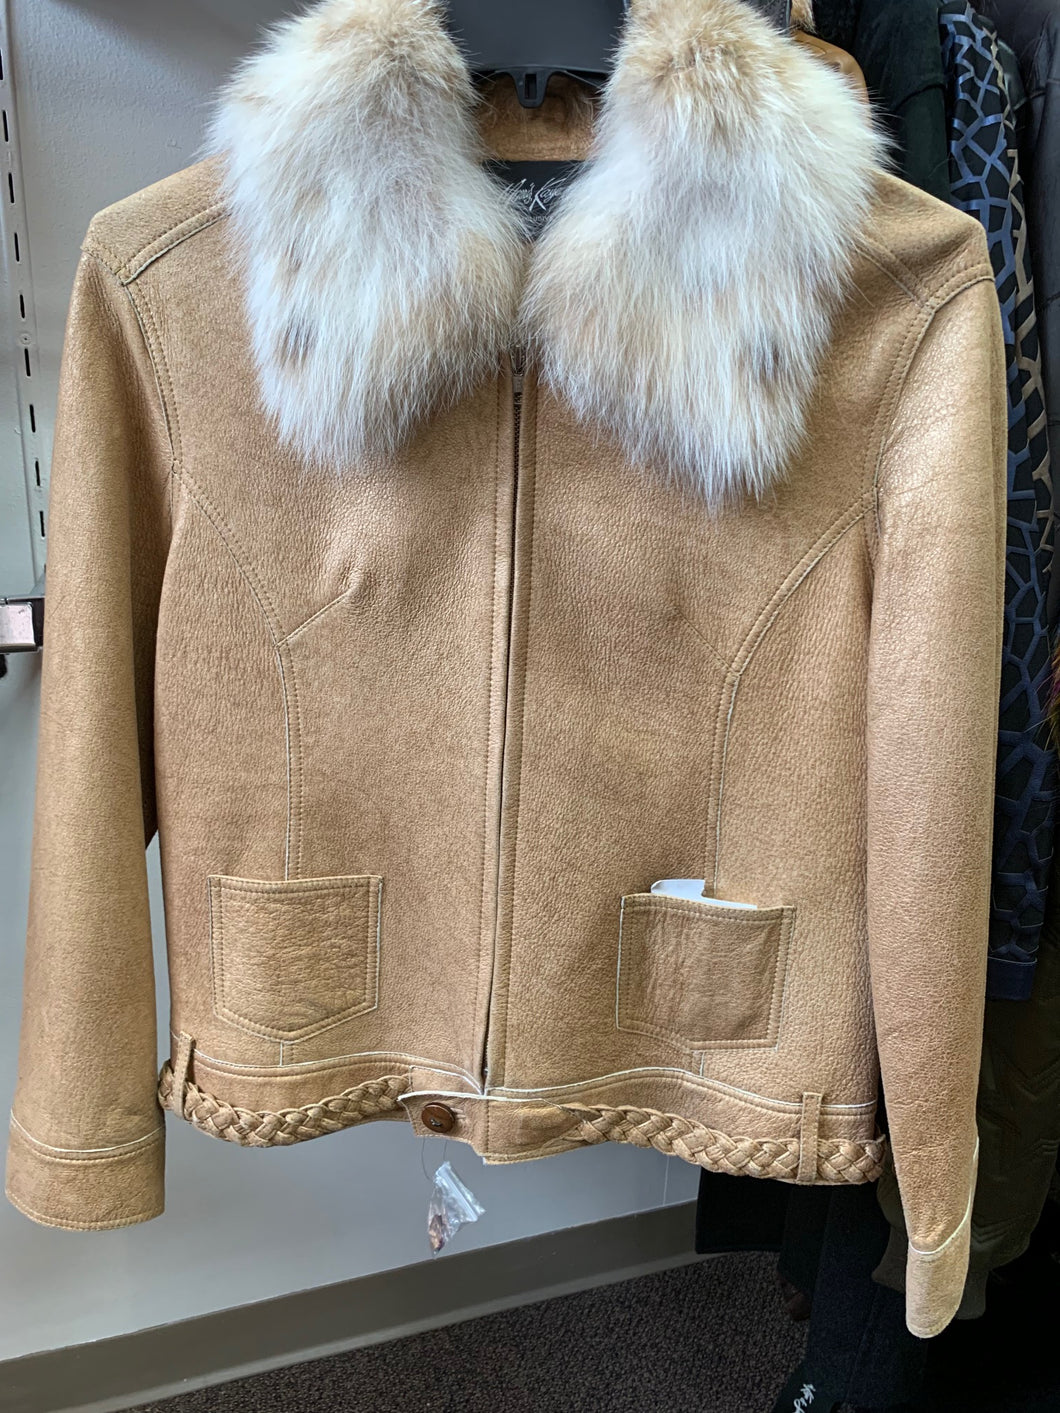 Camel colored Leather Jacket with Braided Belt and Fur Collar